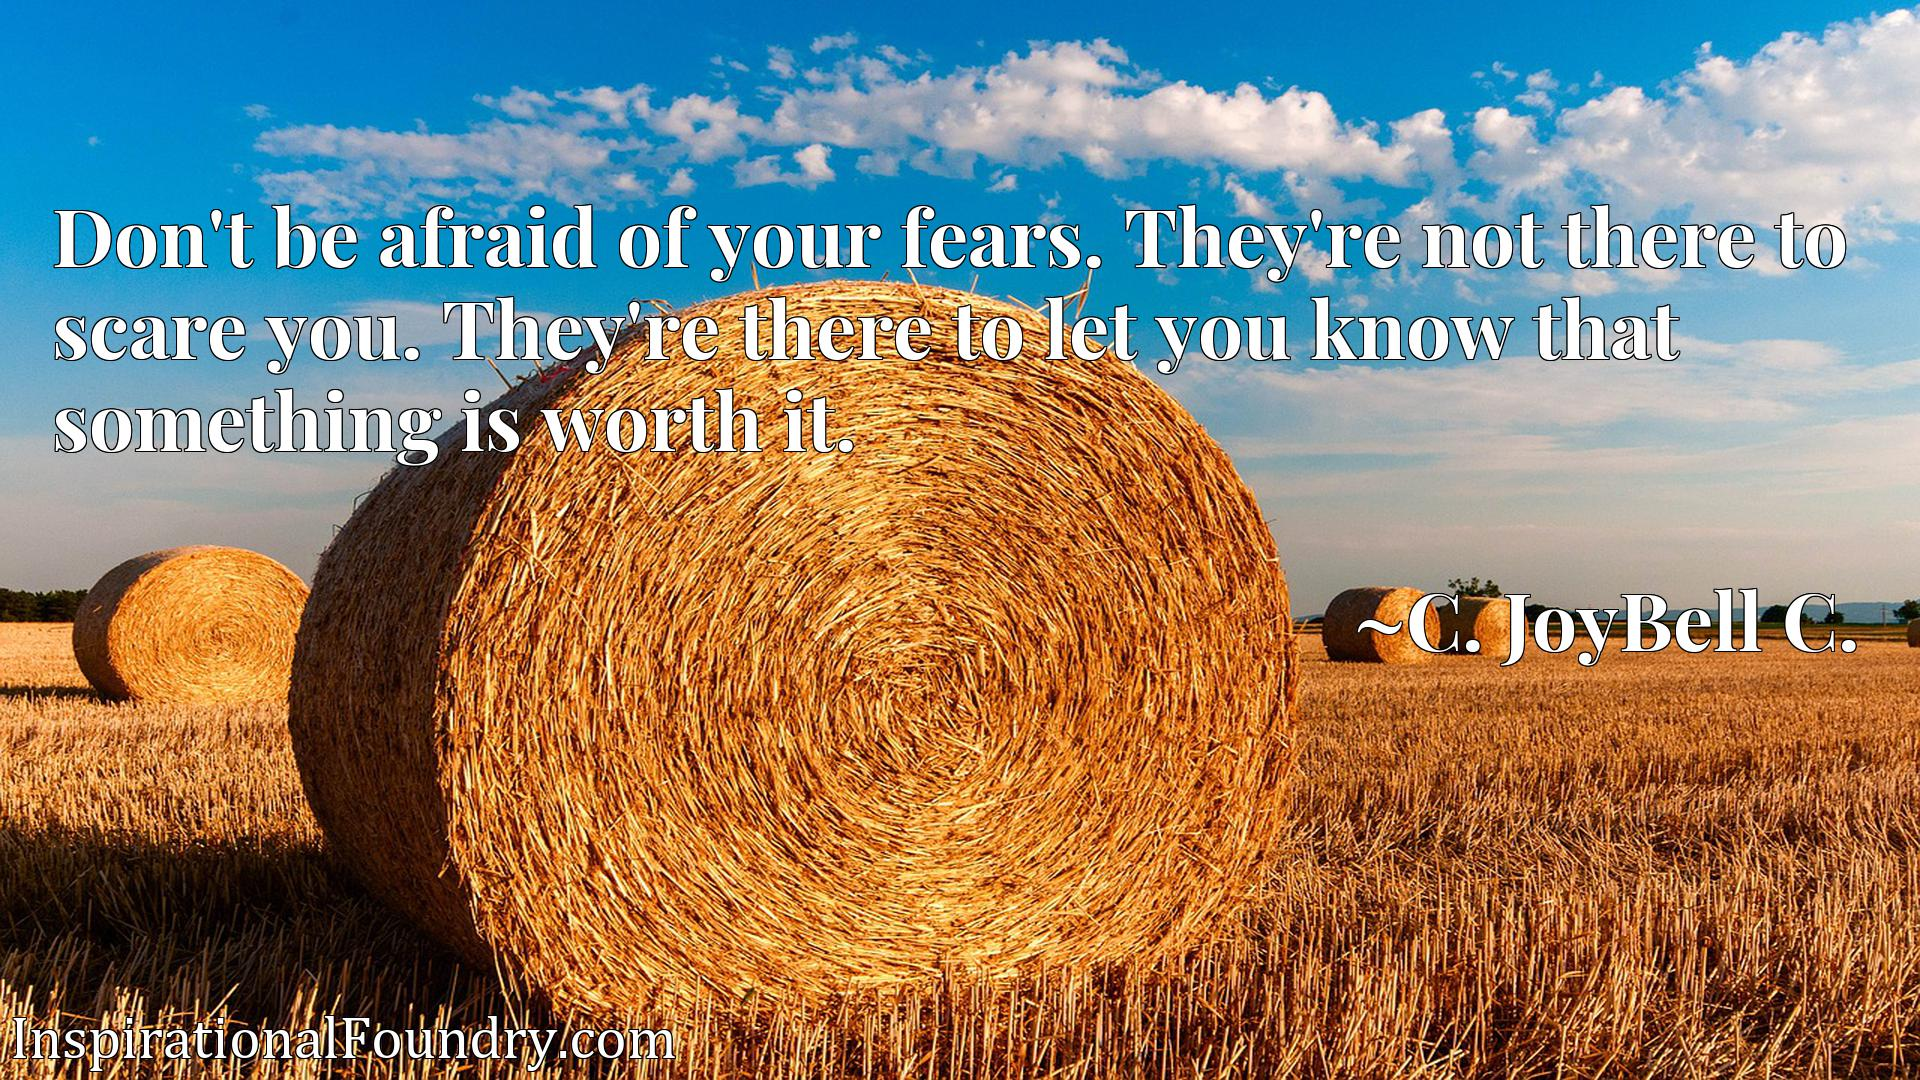 Quote Picture :Don't be afraid of your fears. They're not there to scare you. They're there to let you know that something is worth it.